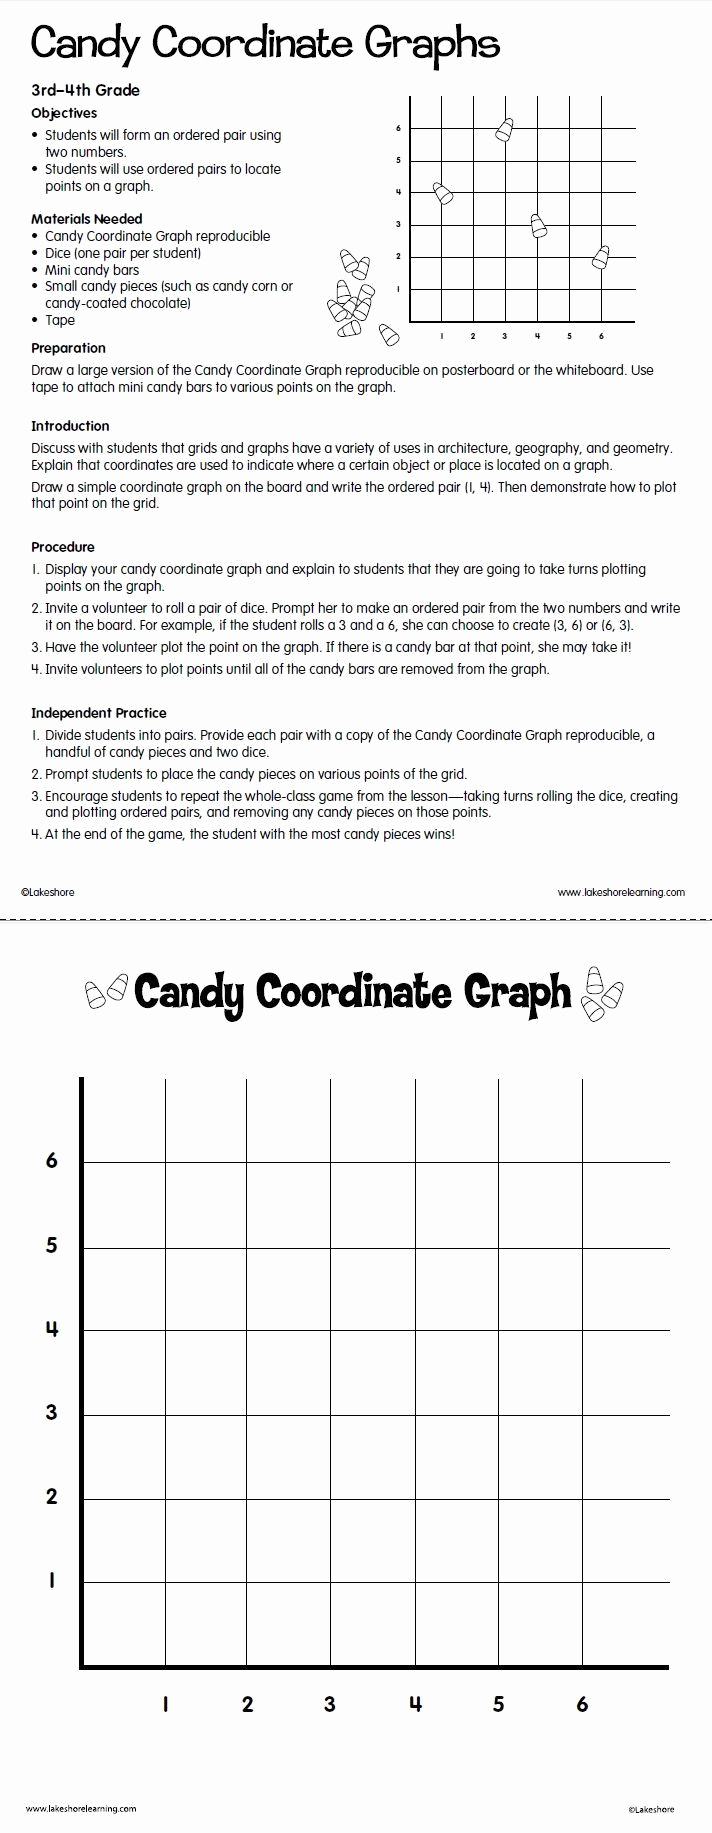 Free Coordinate Graphing Worksheets Awesome 2 Coordinate Graph Worksheet Candy Coordinate Graphs